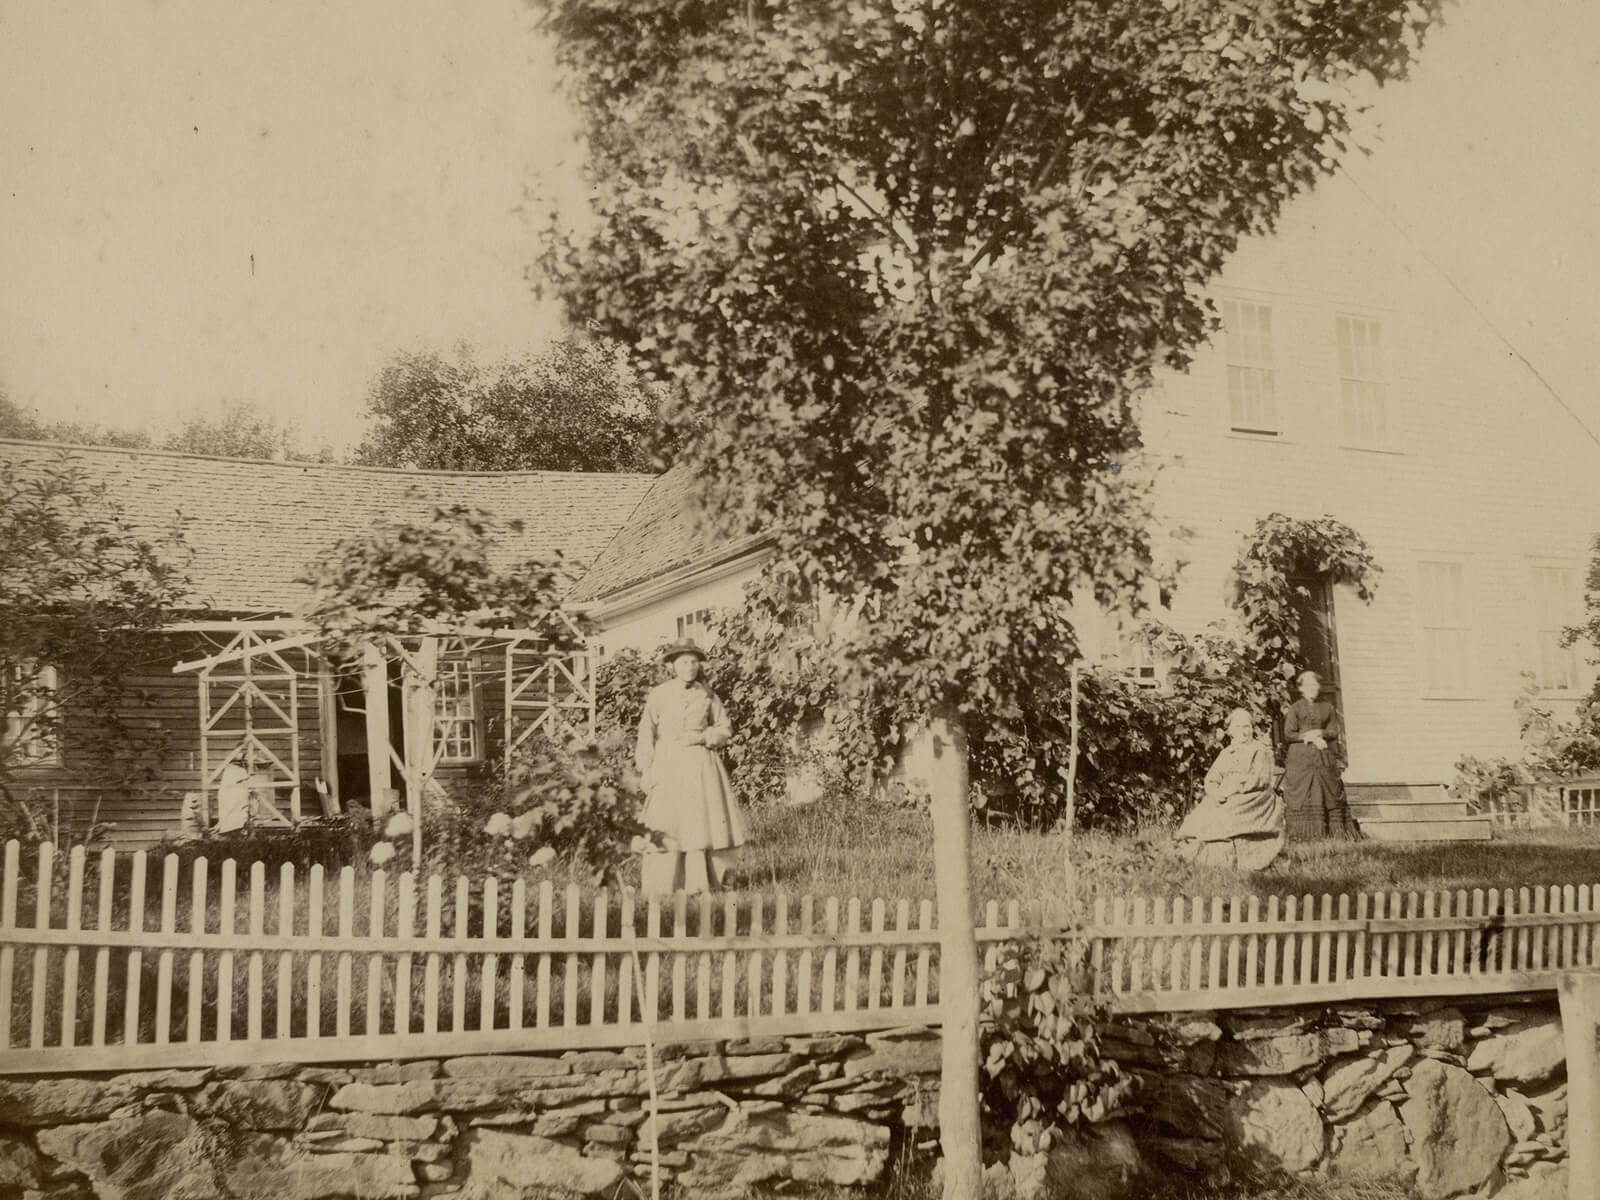 The Briggs home where Marenda was born and raised